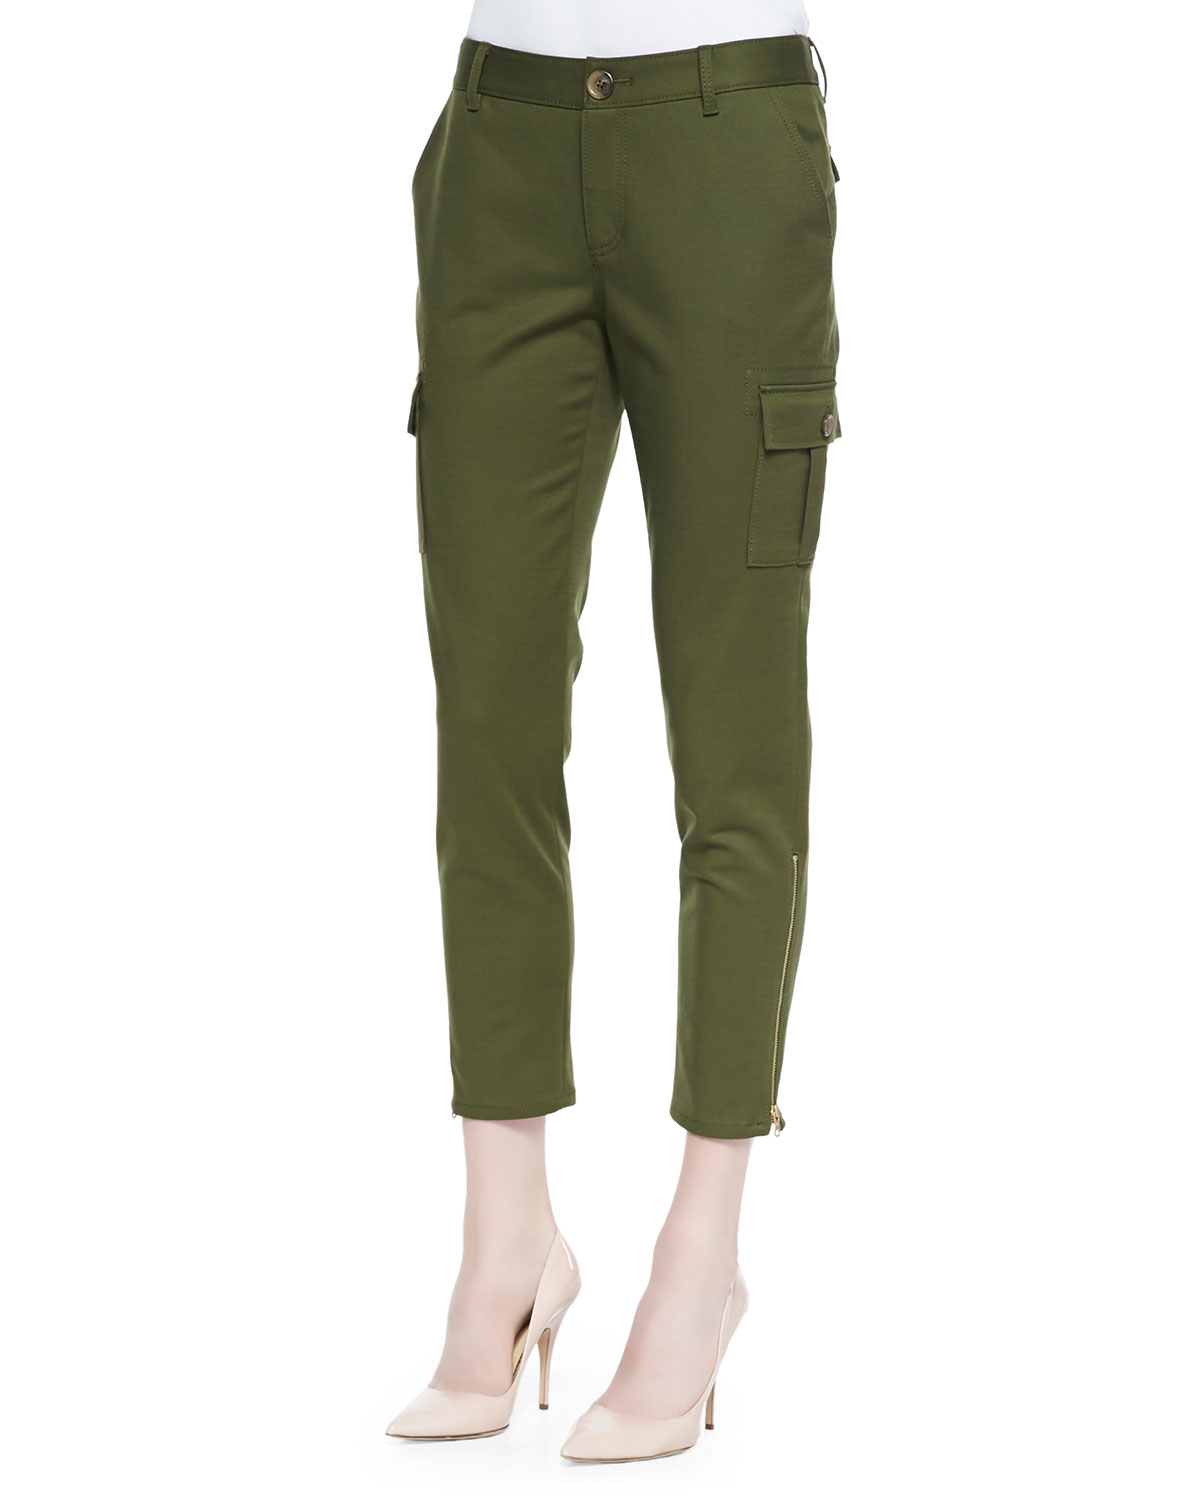 Womens cropped slim cargo pants with zip cuffs   kate spade new york   Alma